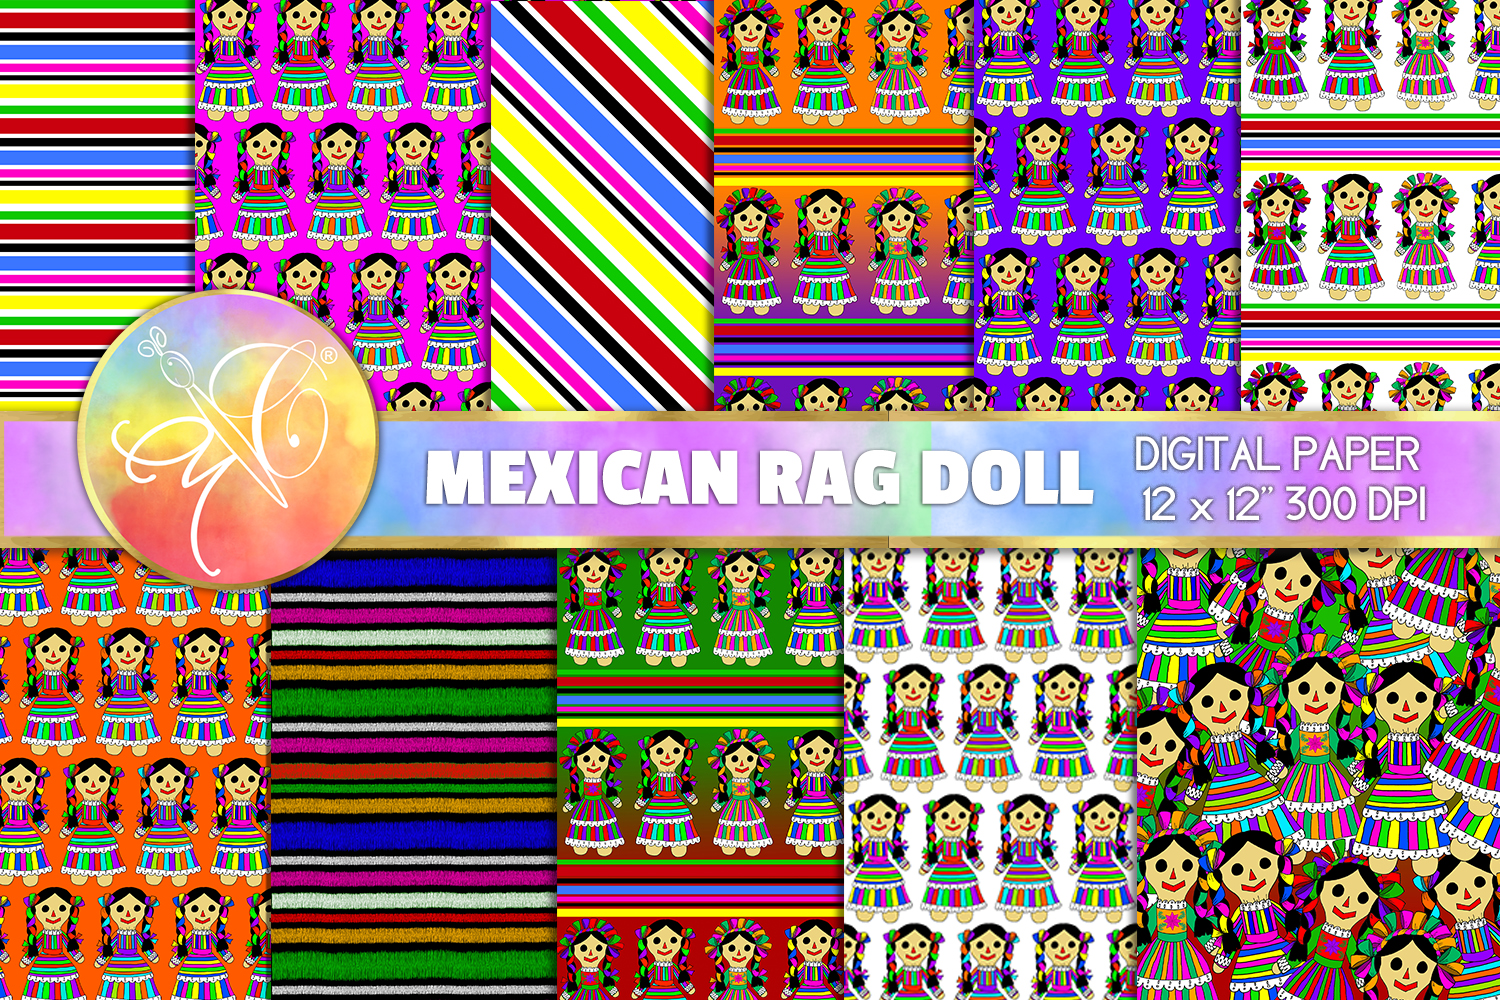 Mexican Rag Doll Digital Paper, Digital Background example image 1